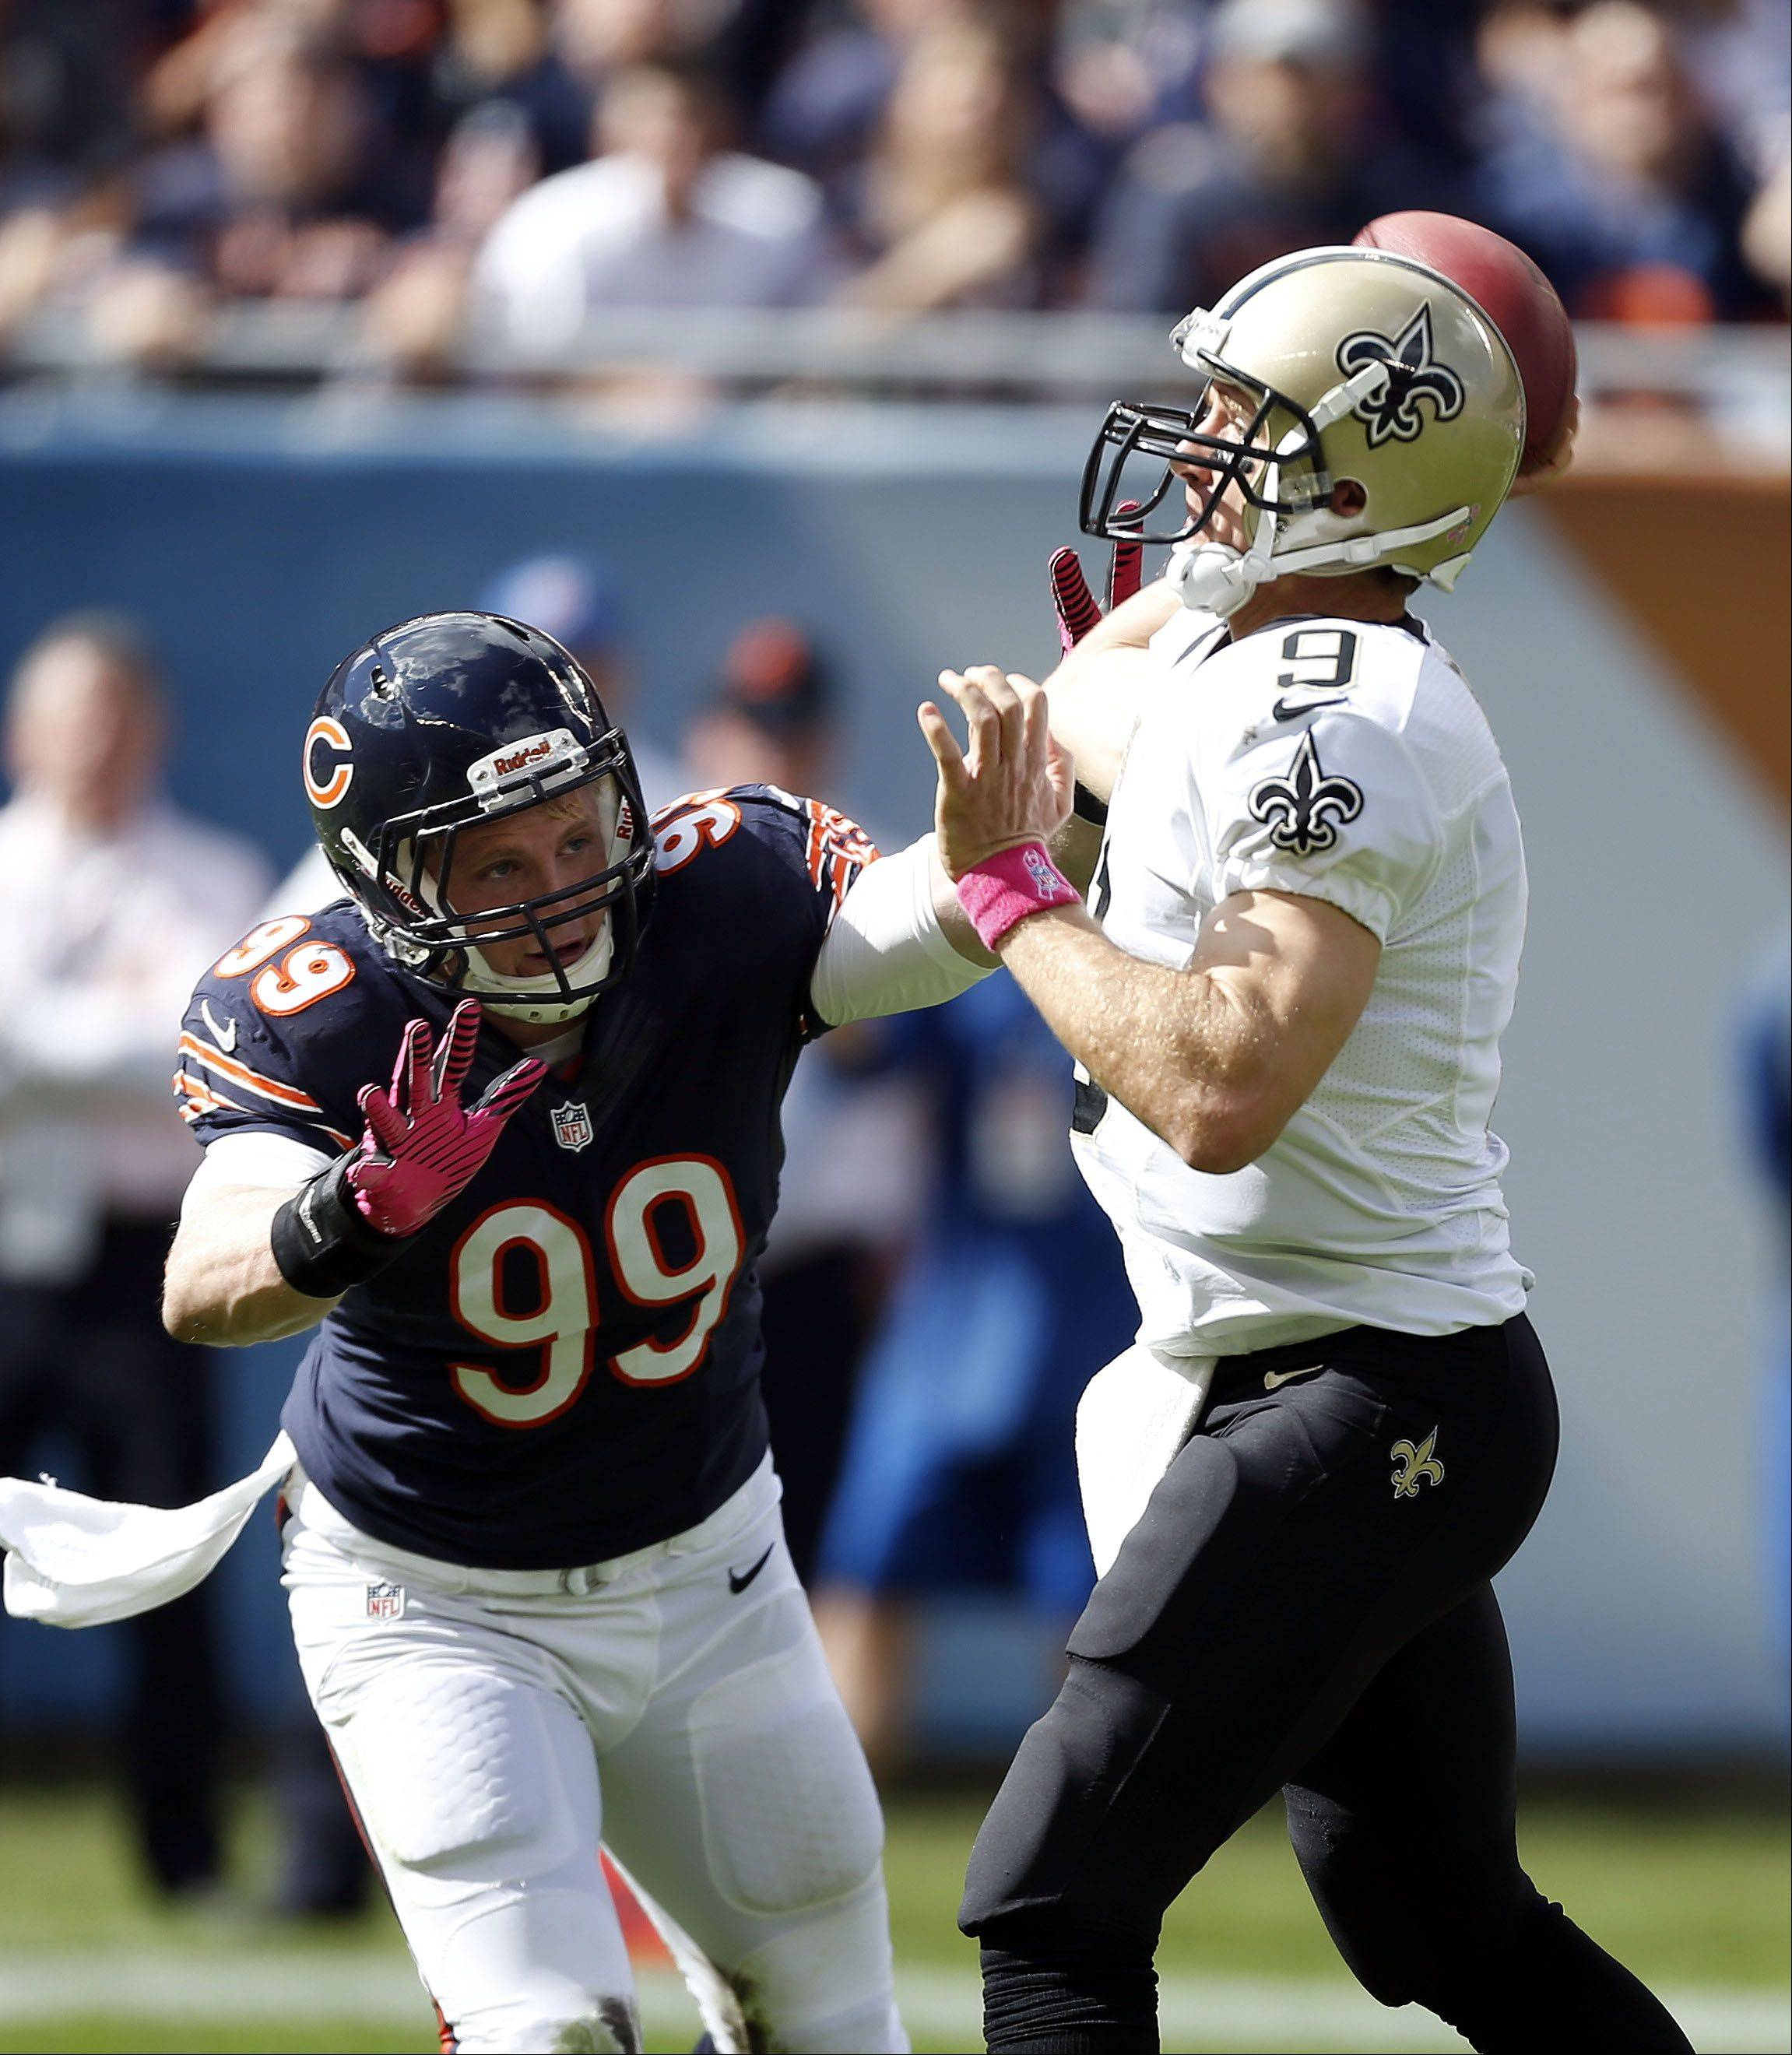 Chicago Bears defensive end Shea McClellin pressures New Orleans Saints quarterback Drew Brees.